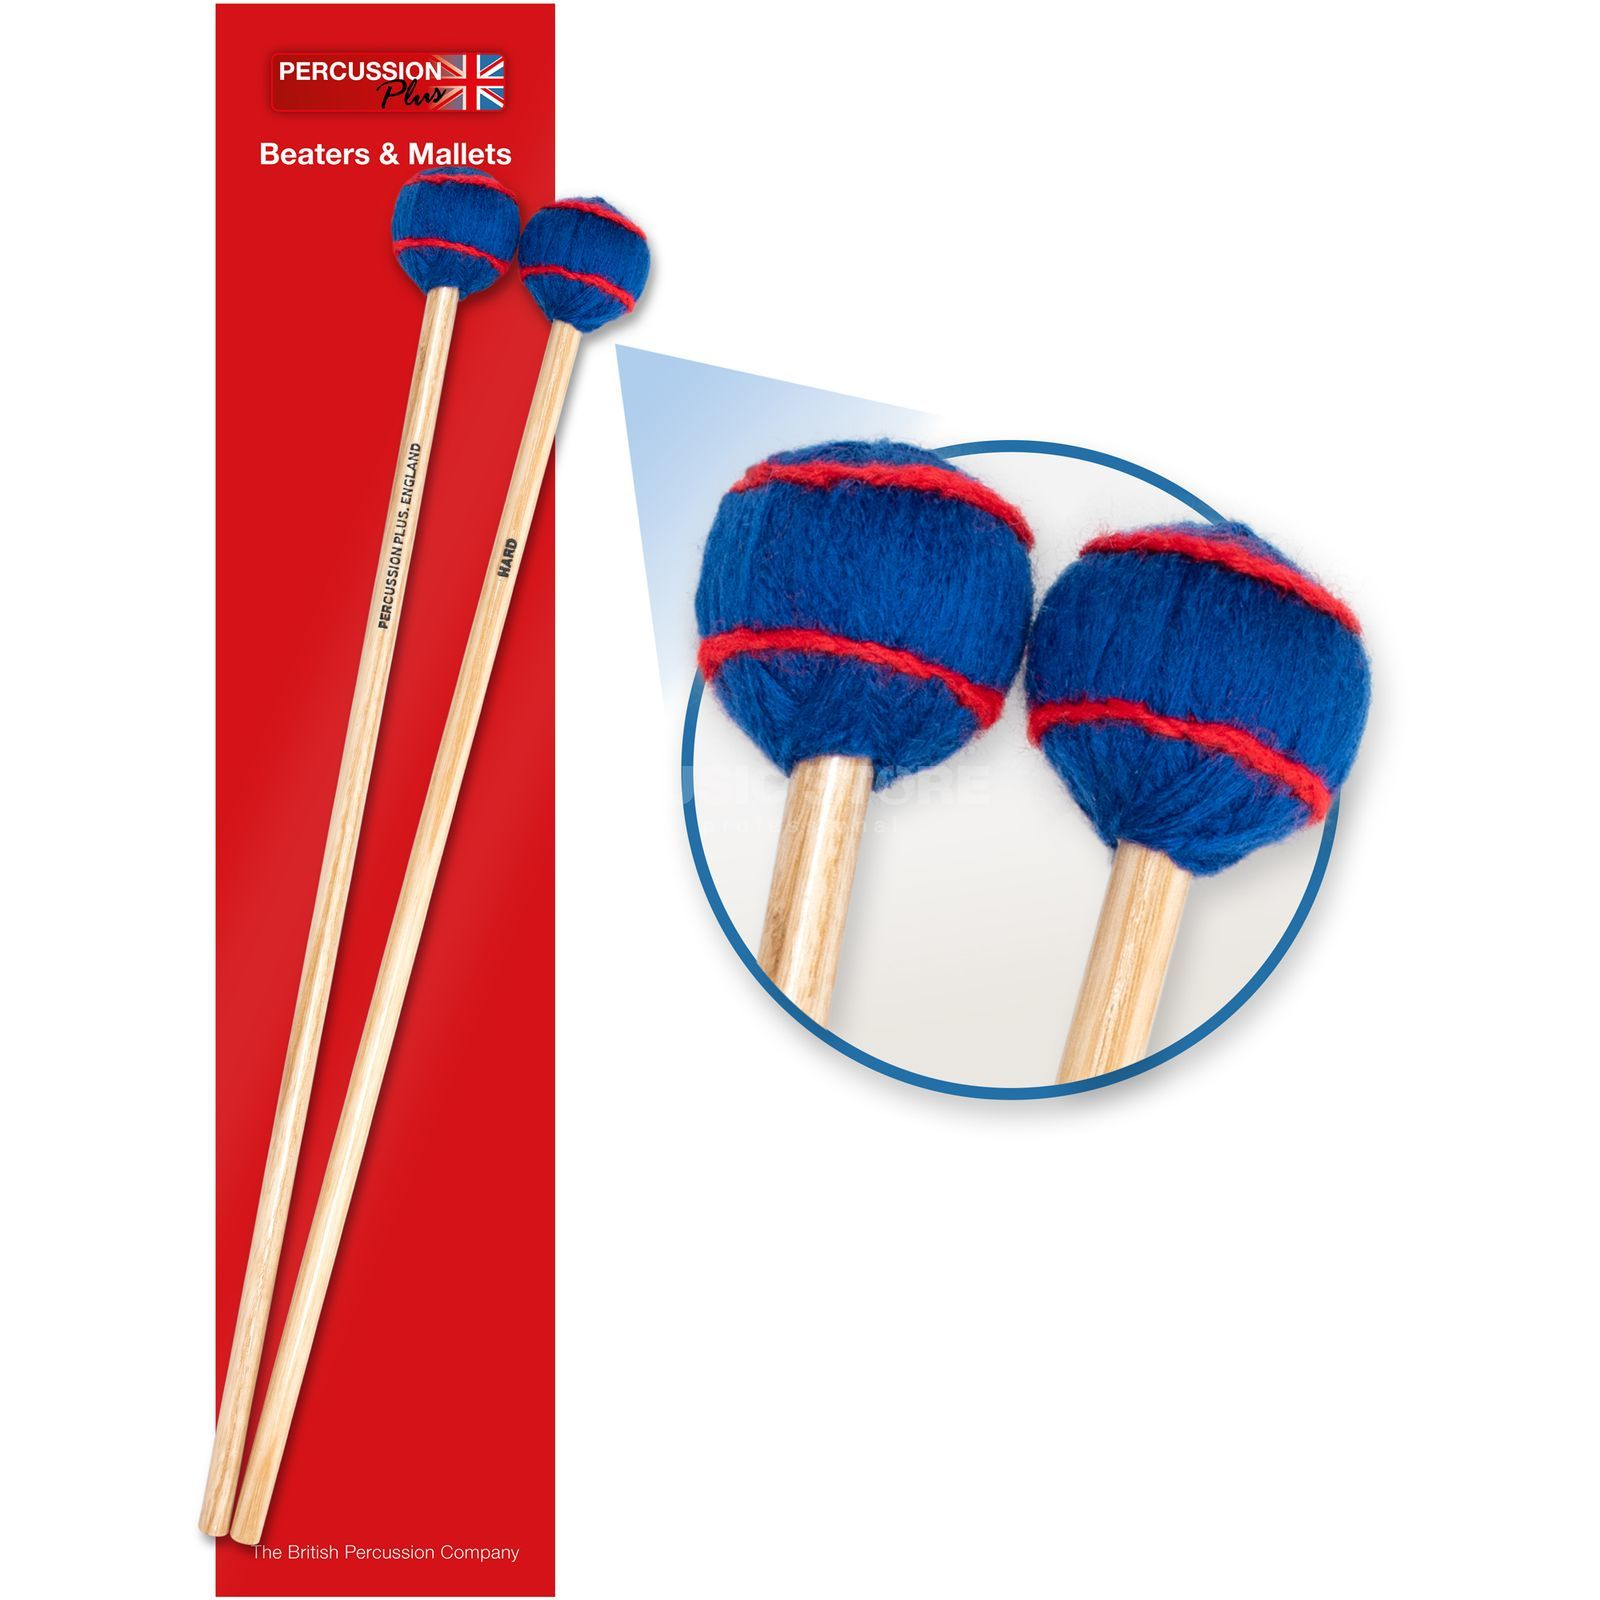 Percussion Plus PP075 Vibraphon Mallets, Hard Produktbillede